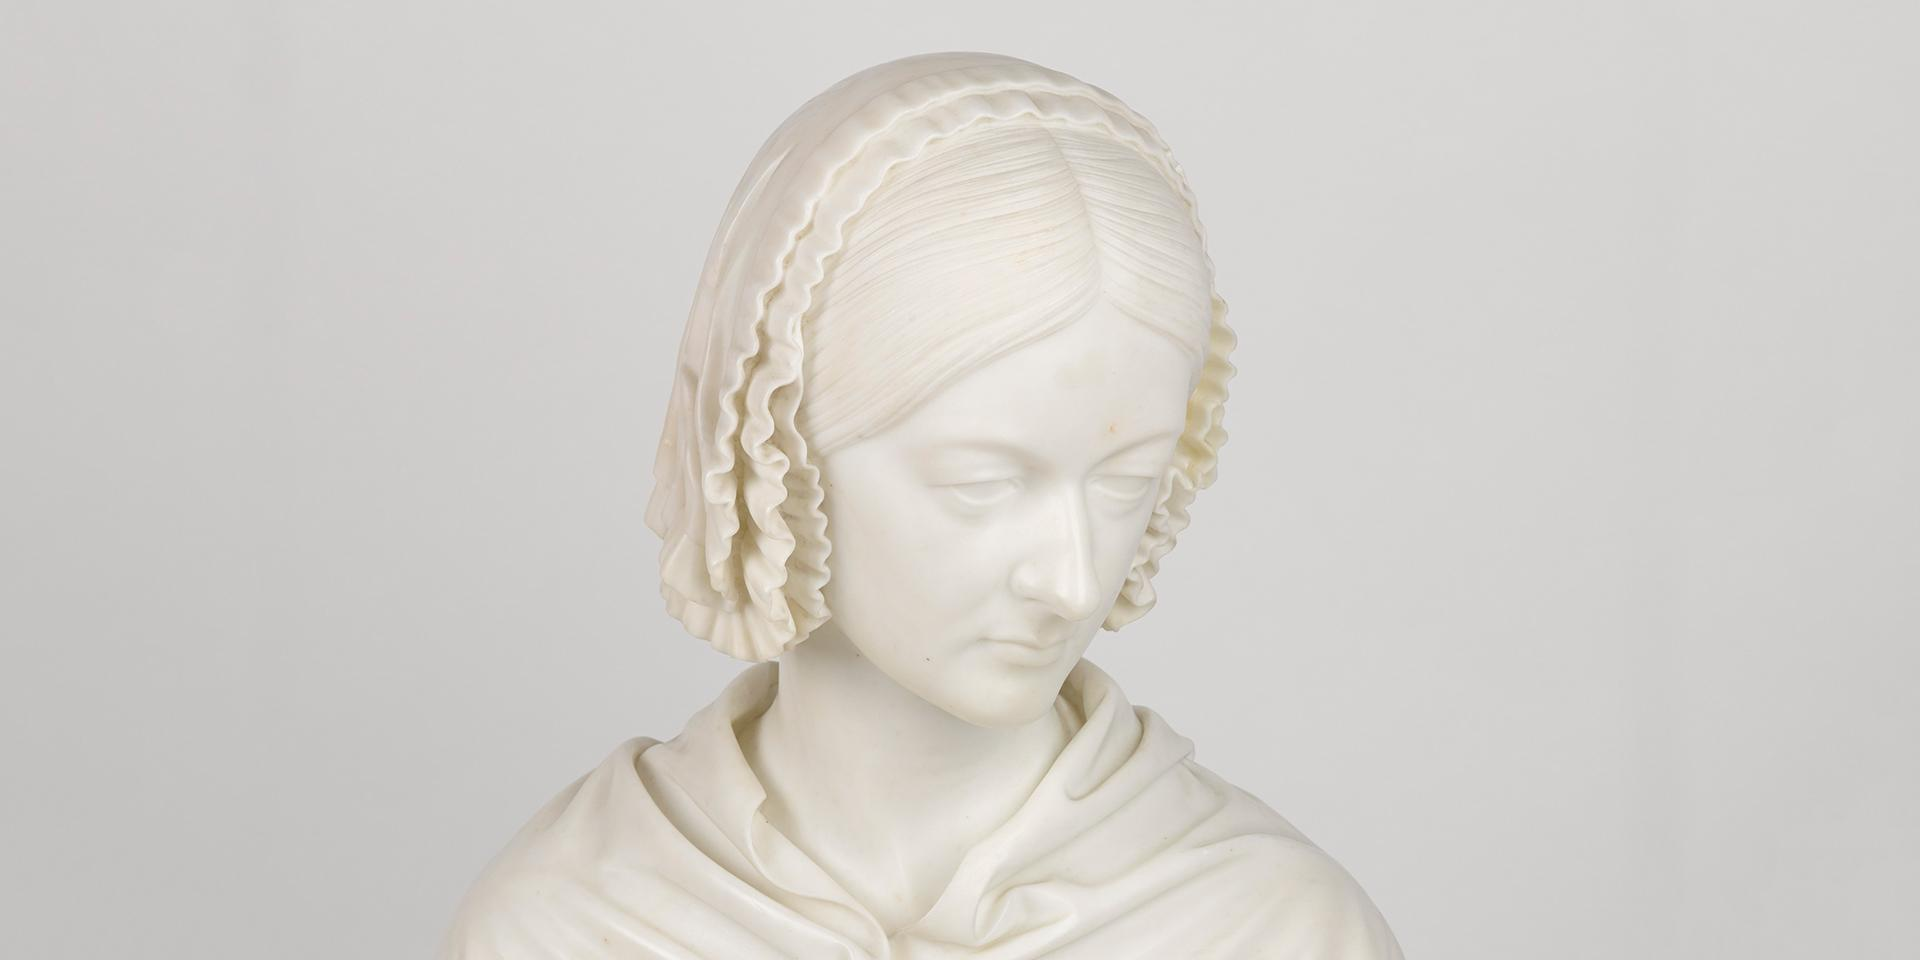 Bust presented to Florence Nightingale by men of the British Army in 1862